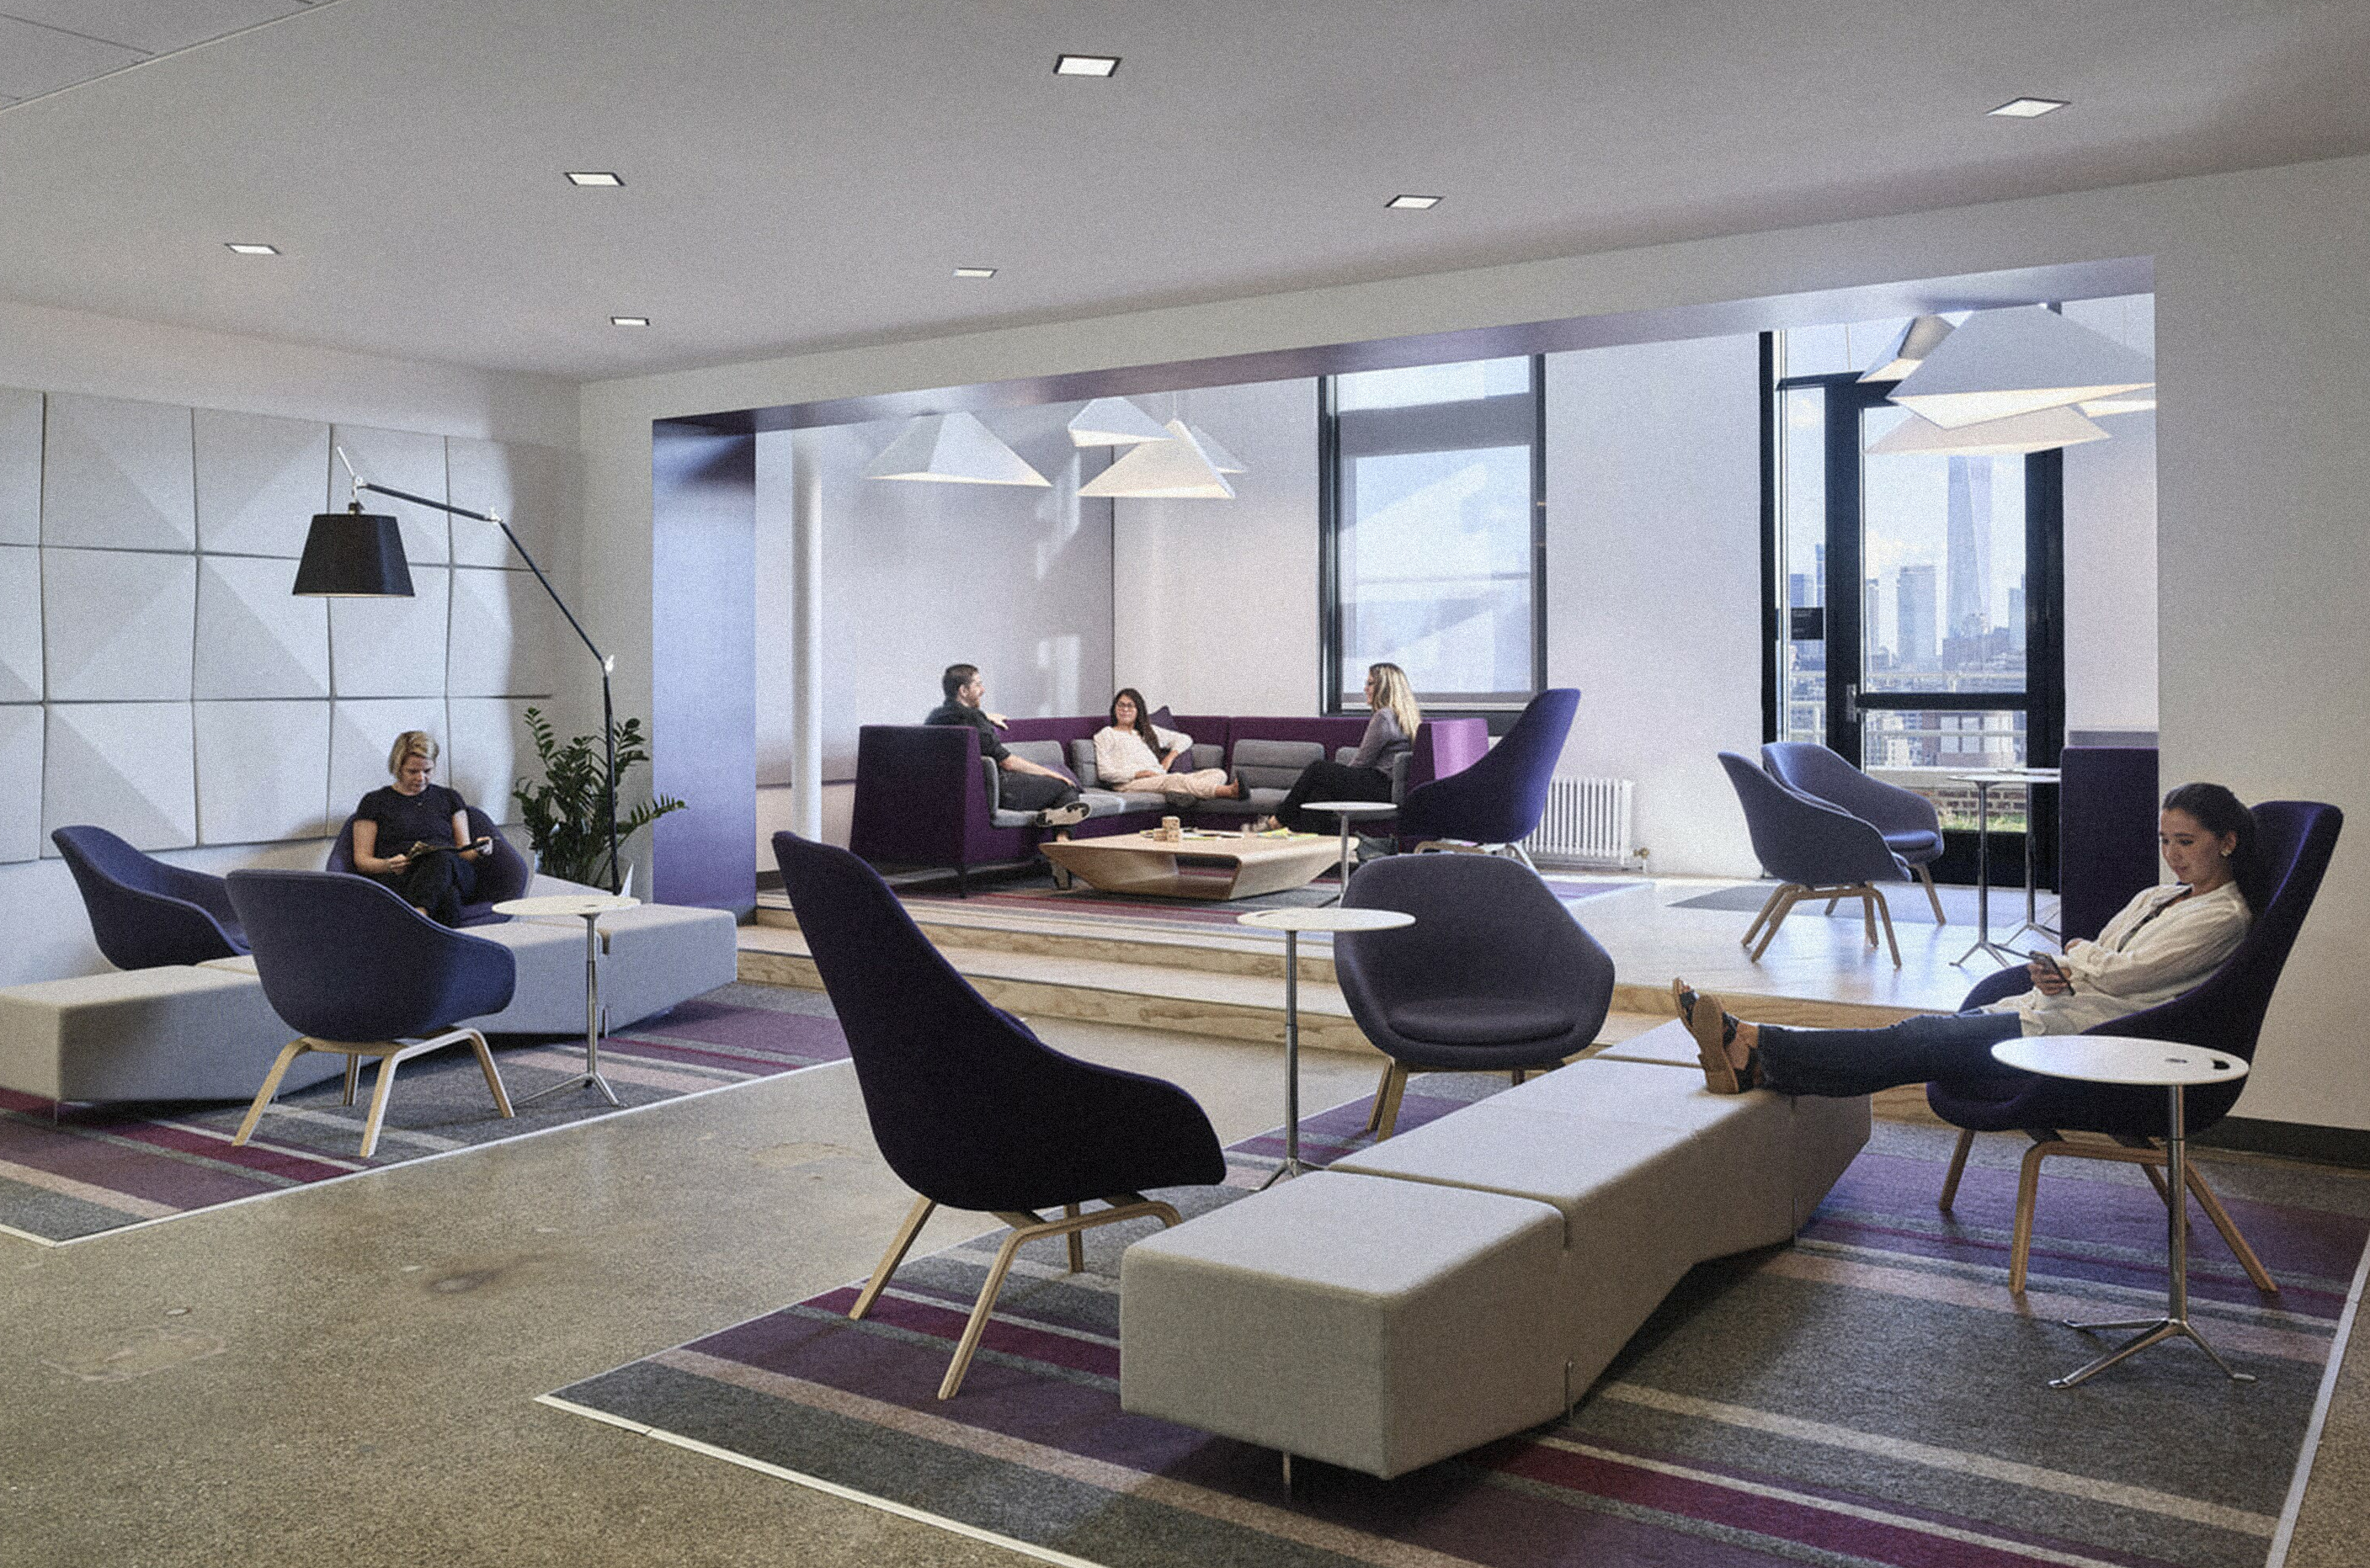 Bringing Healthcare Solutions to Office Design: Making Workplace Safe and Sound